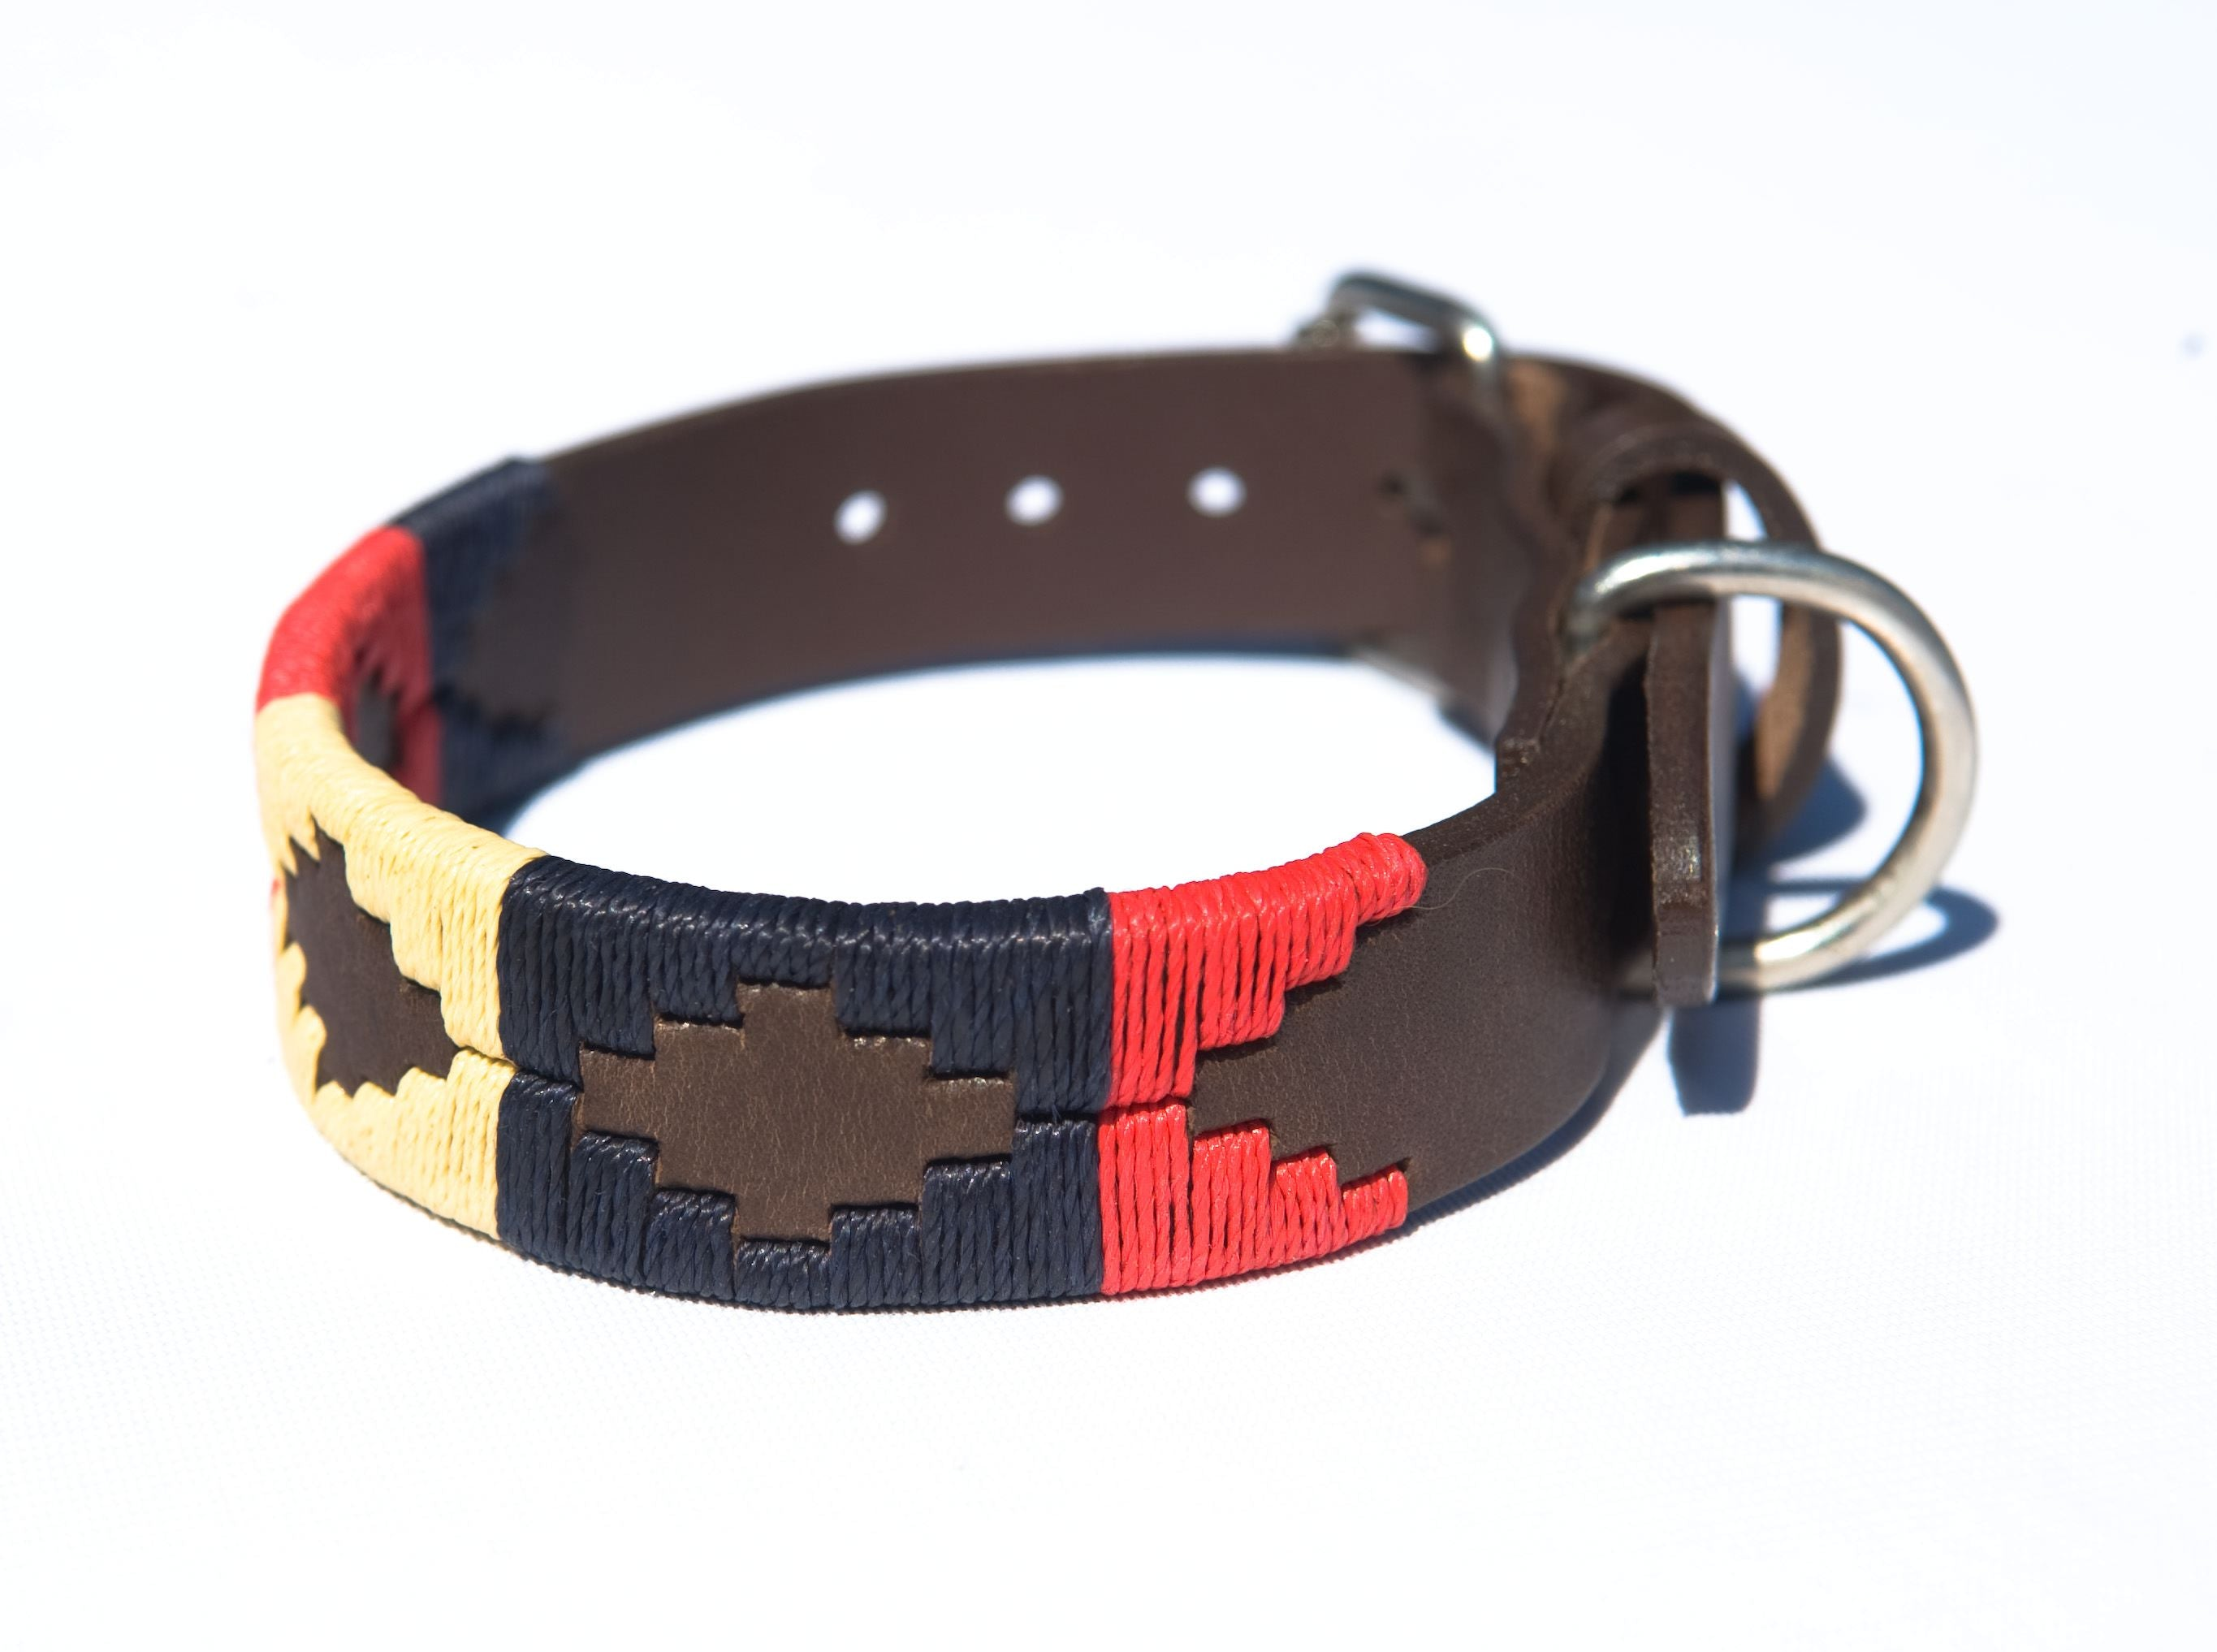 Pioneros Argentinian Polo Belt Style Dog Collar in Navy/Cream/Red